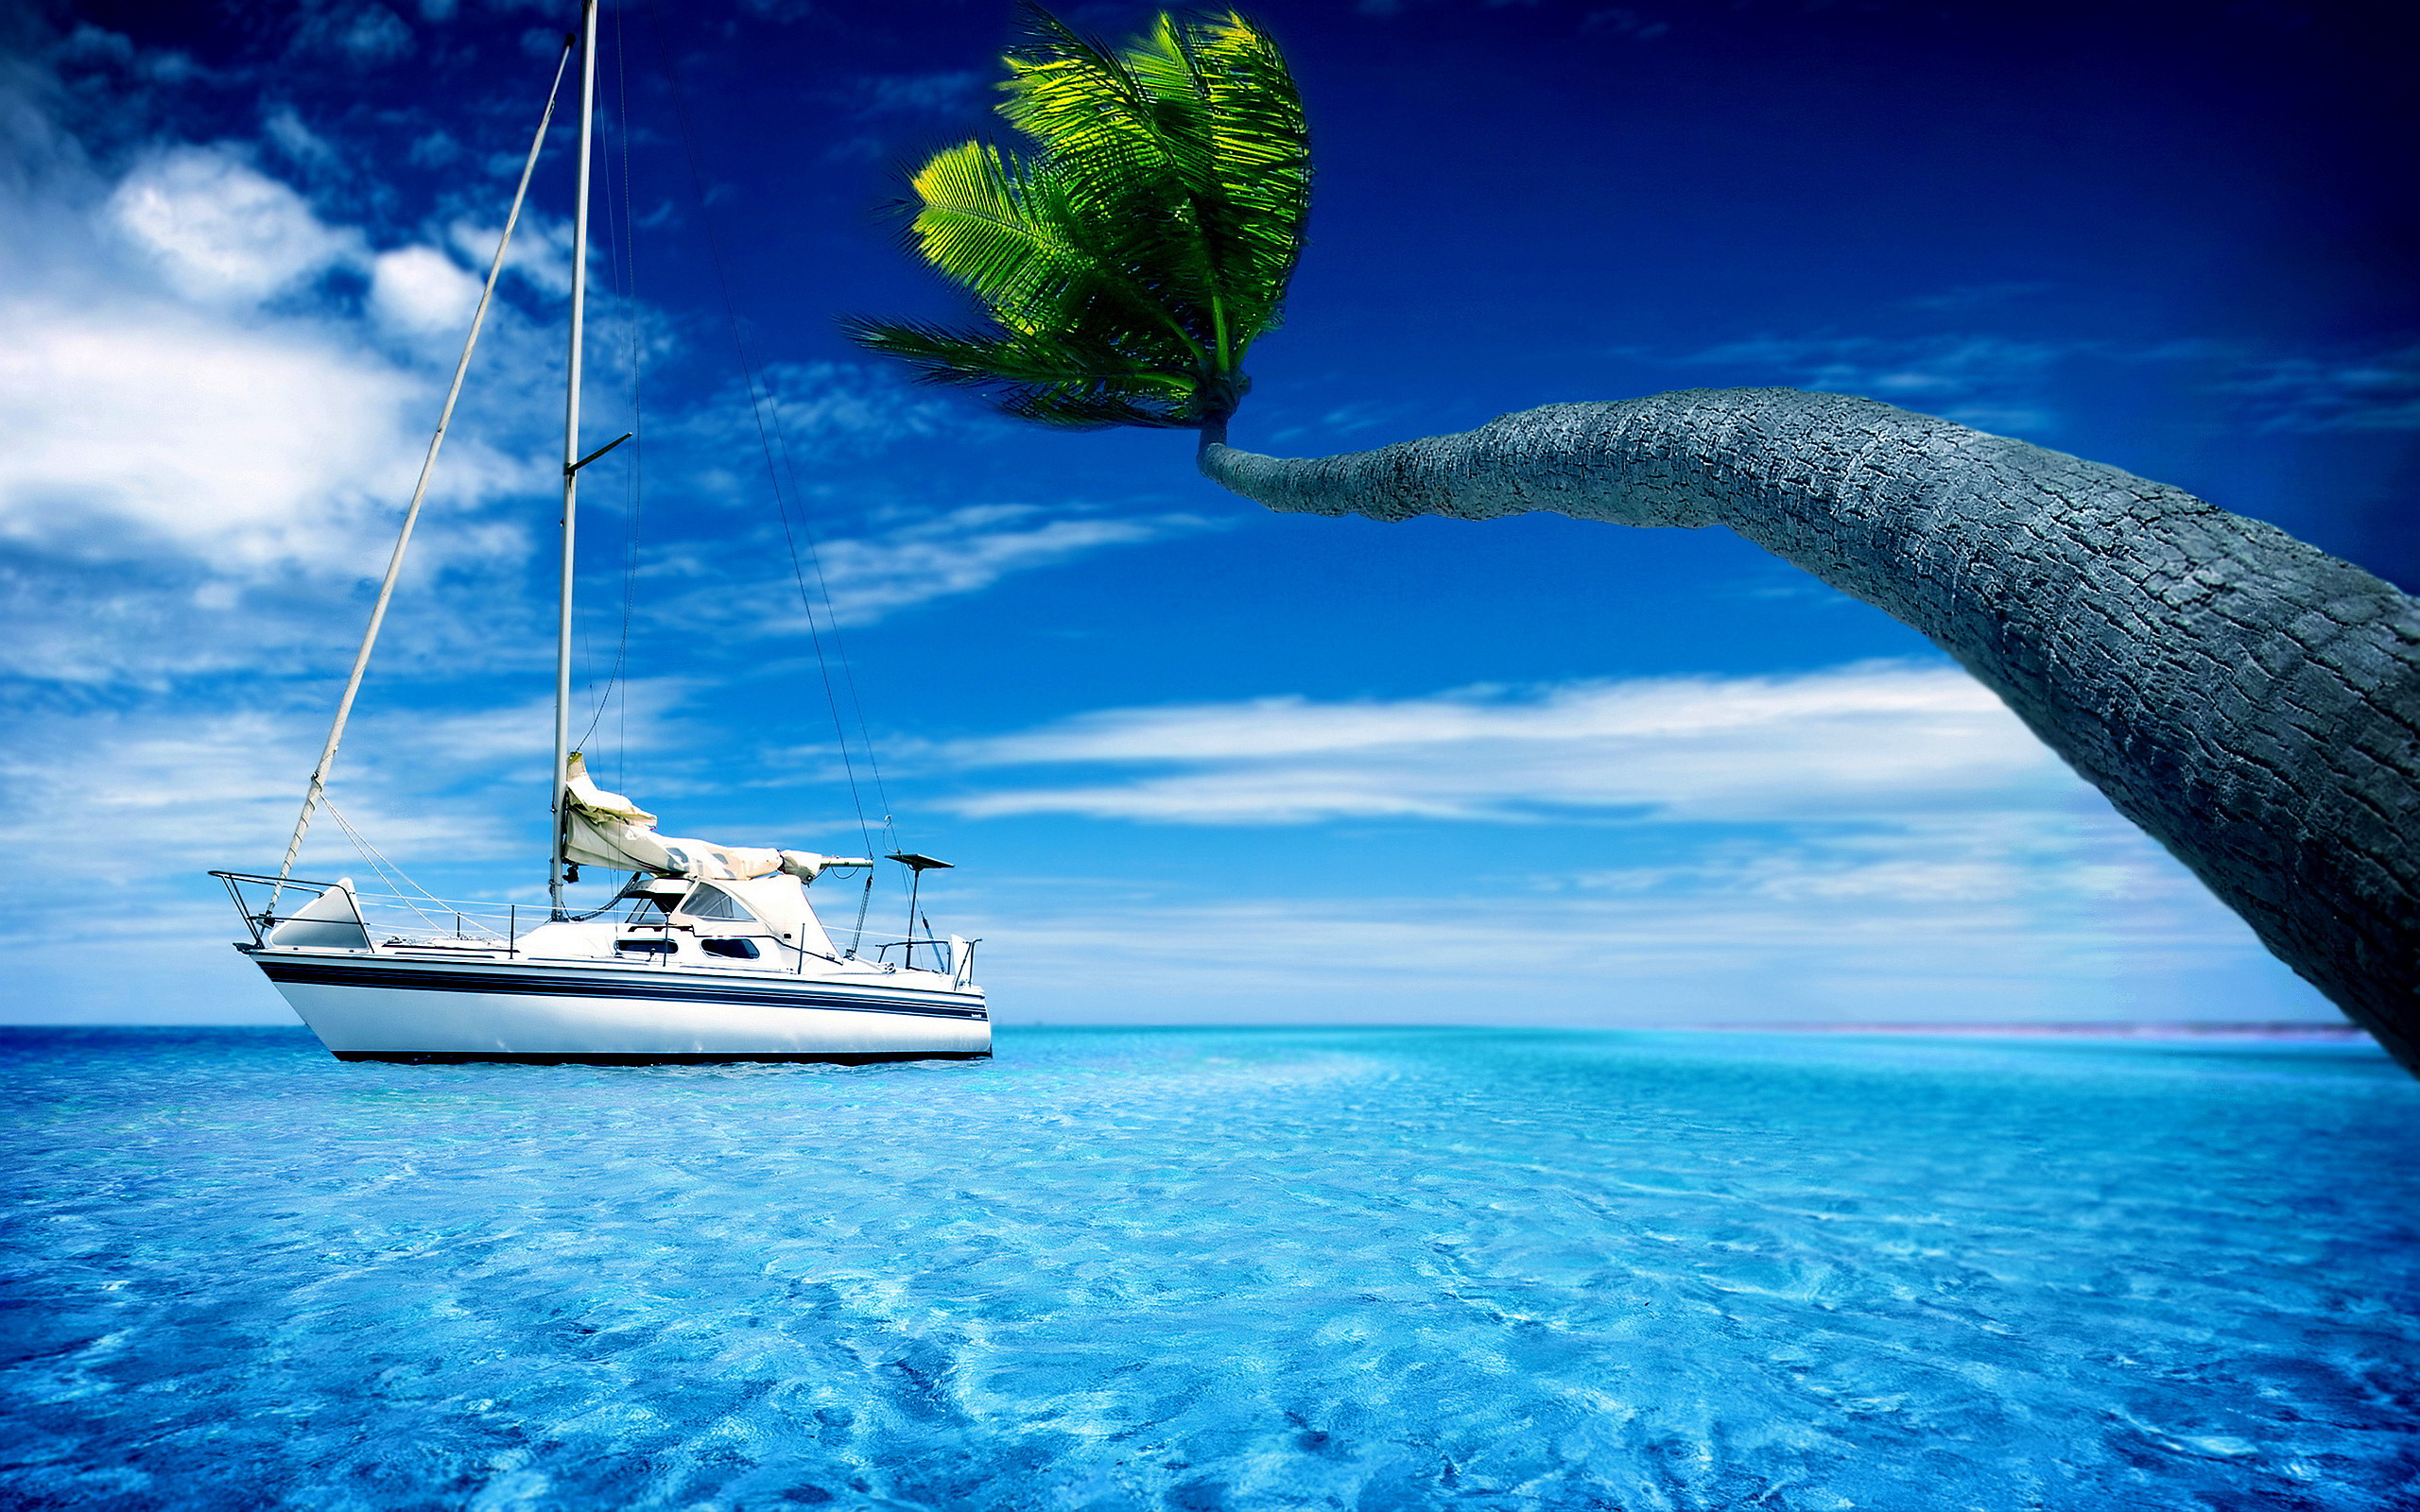 How much should I charge to share my boat?